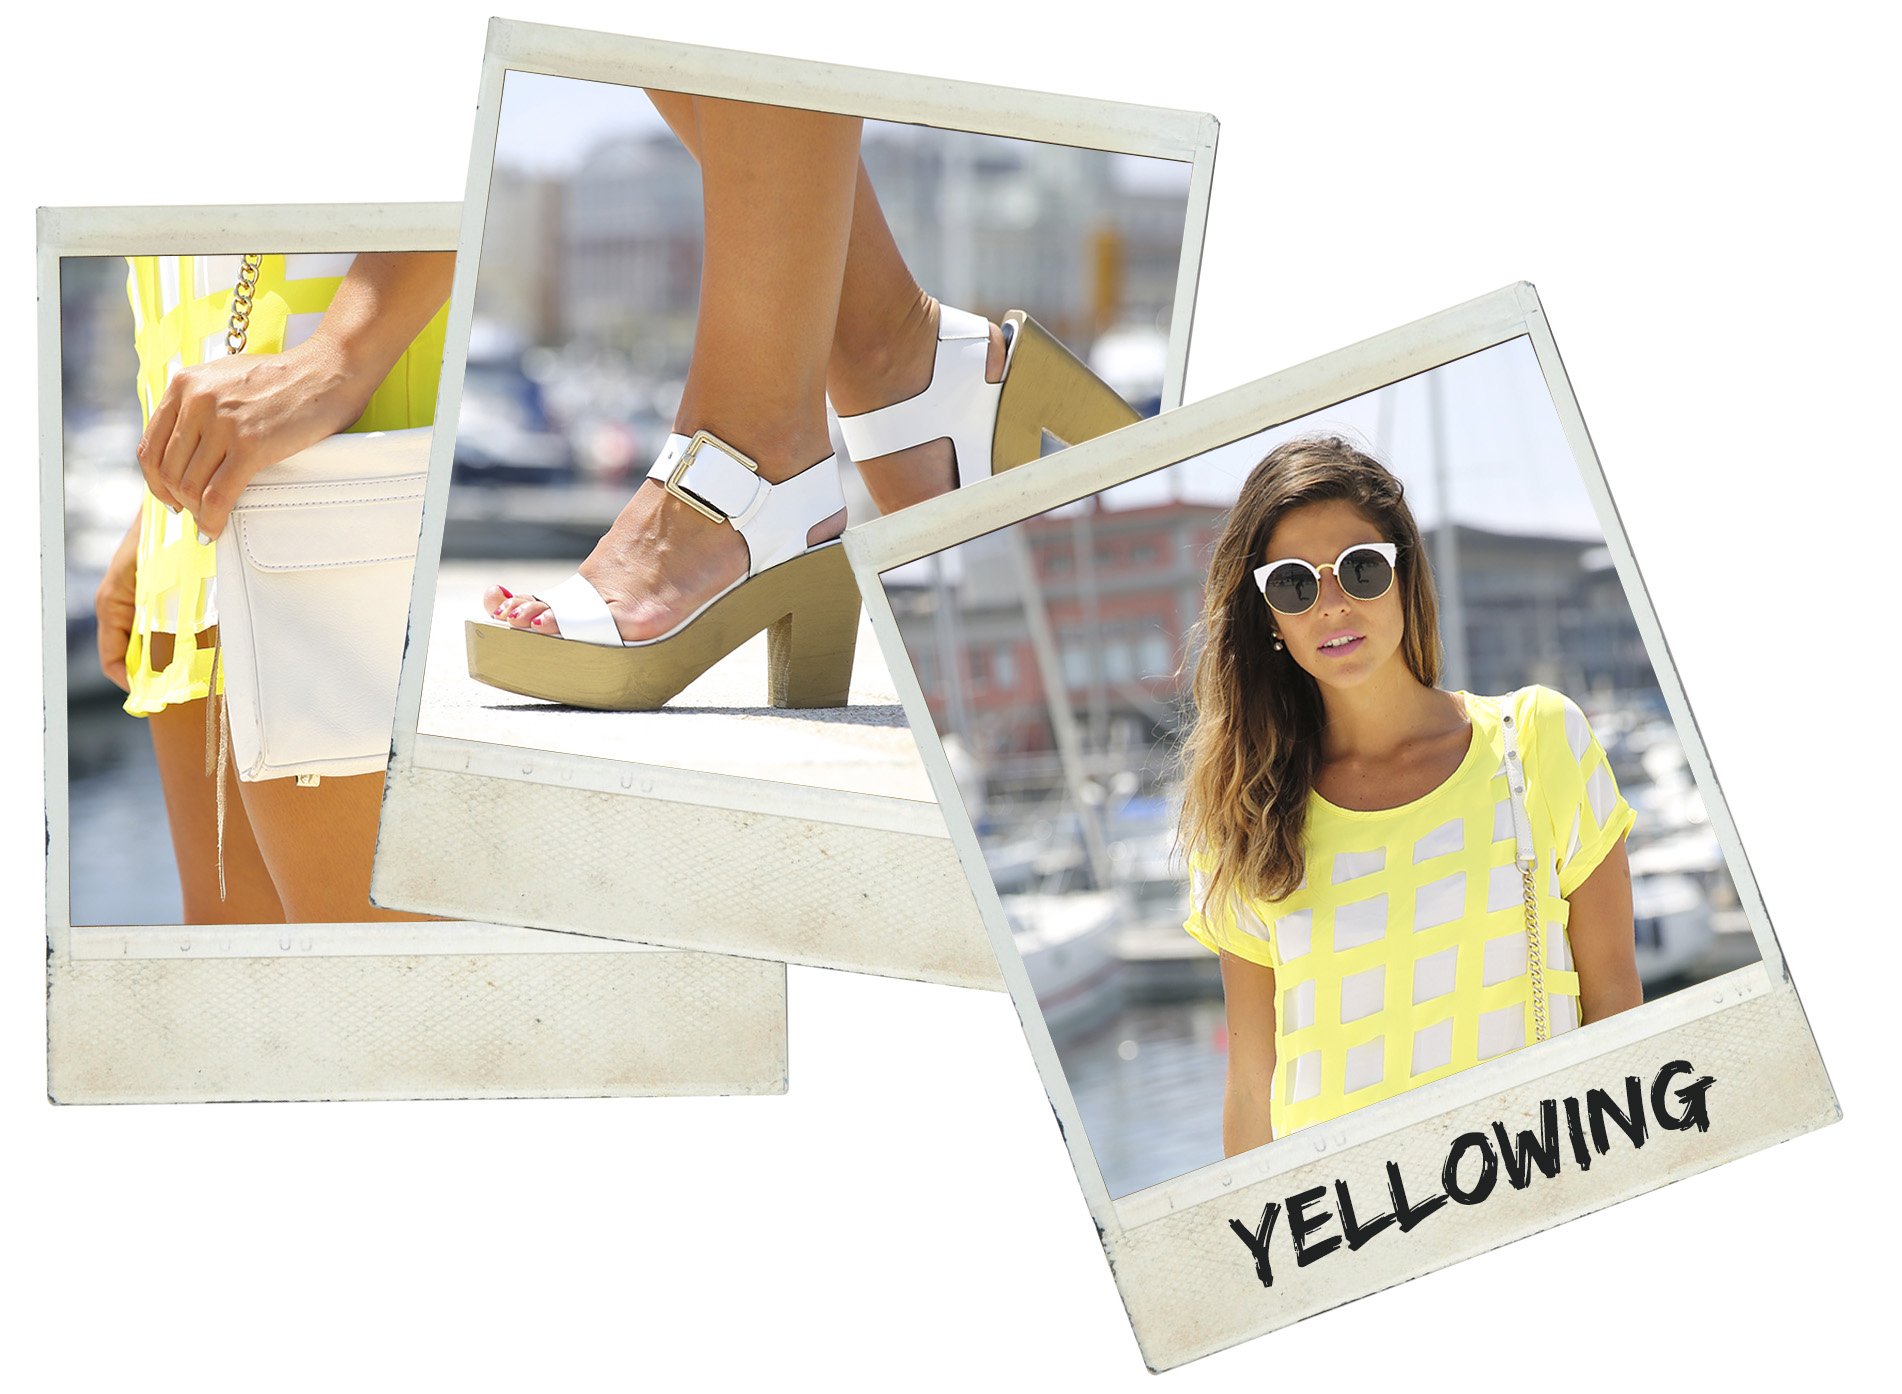 trendy_taste-look-outfit-street_style-ootd-blog-blogger-moda_españa-fashion_spain-coruña-galicia-sandalias_plataforma-platform_sandals-rebecca_minkoff-yellow-amarillo-vestido-dress-plaid-cuadros-polaroid